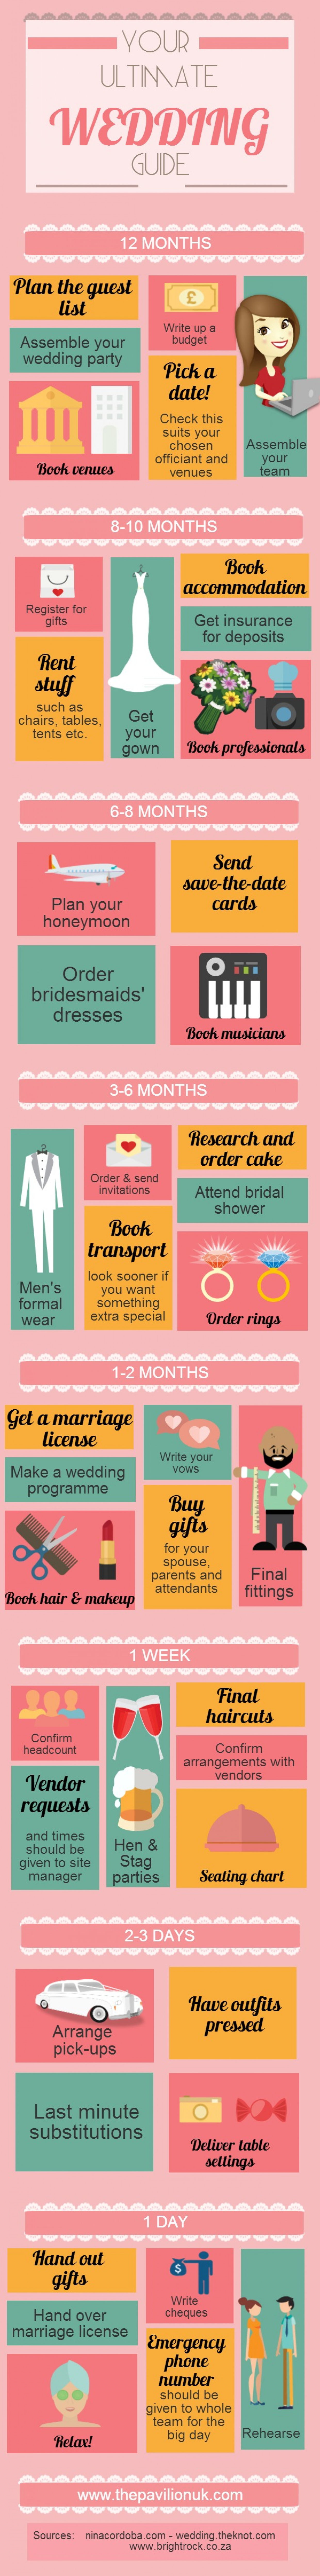 Your Ultimate Wedding Guide Infographic